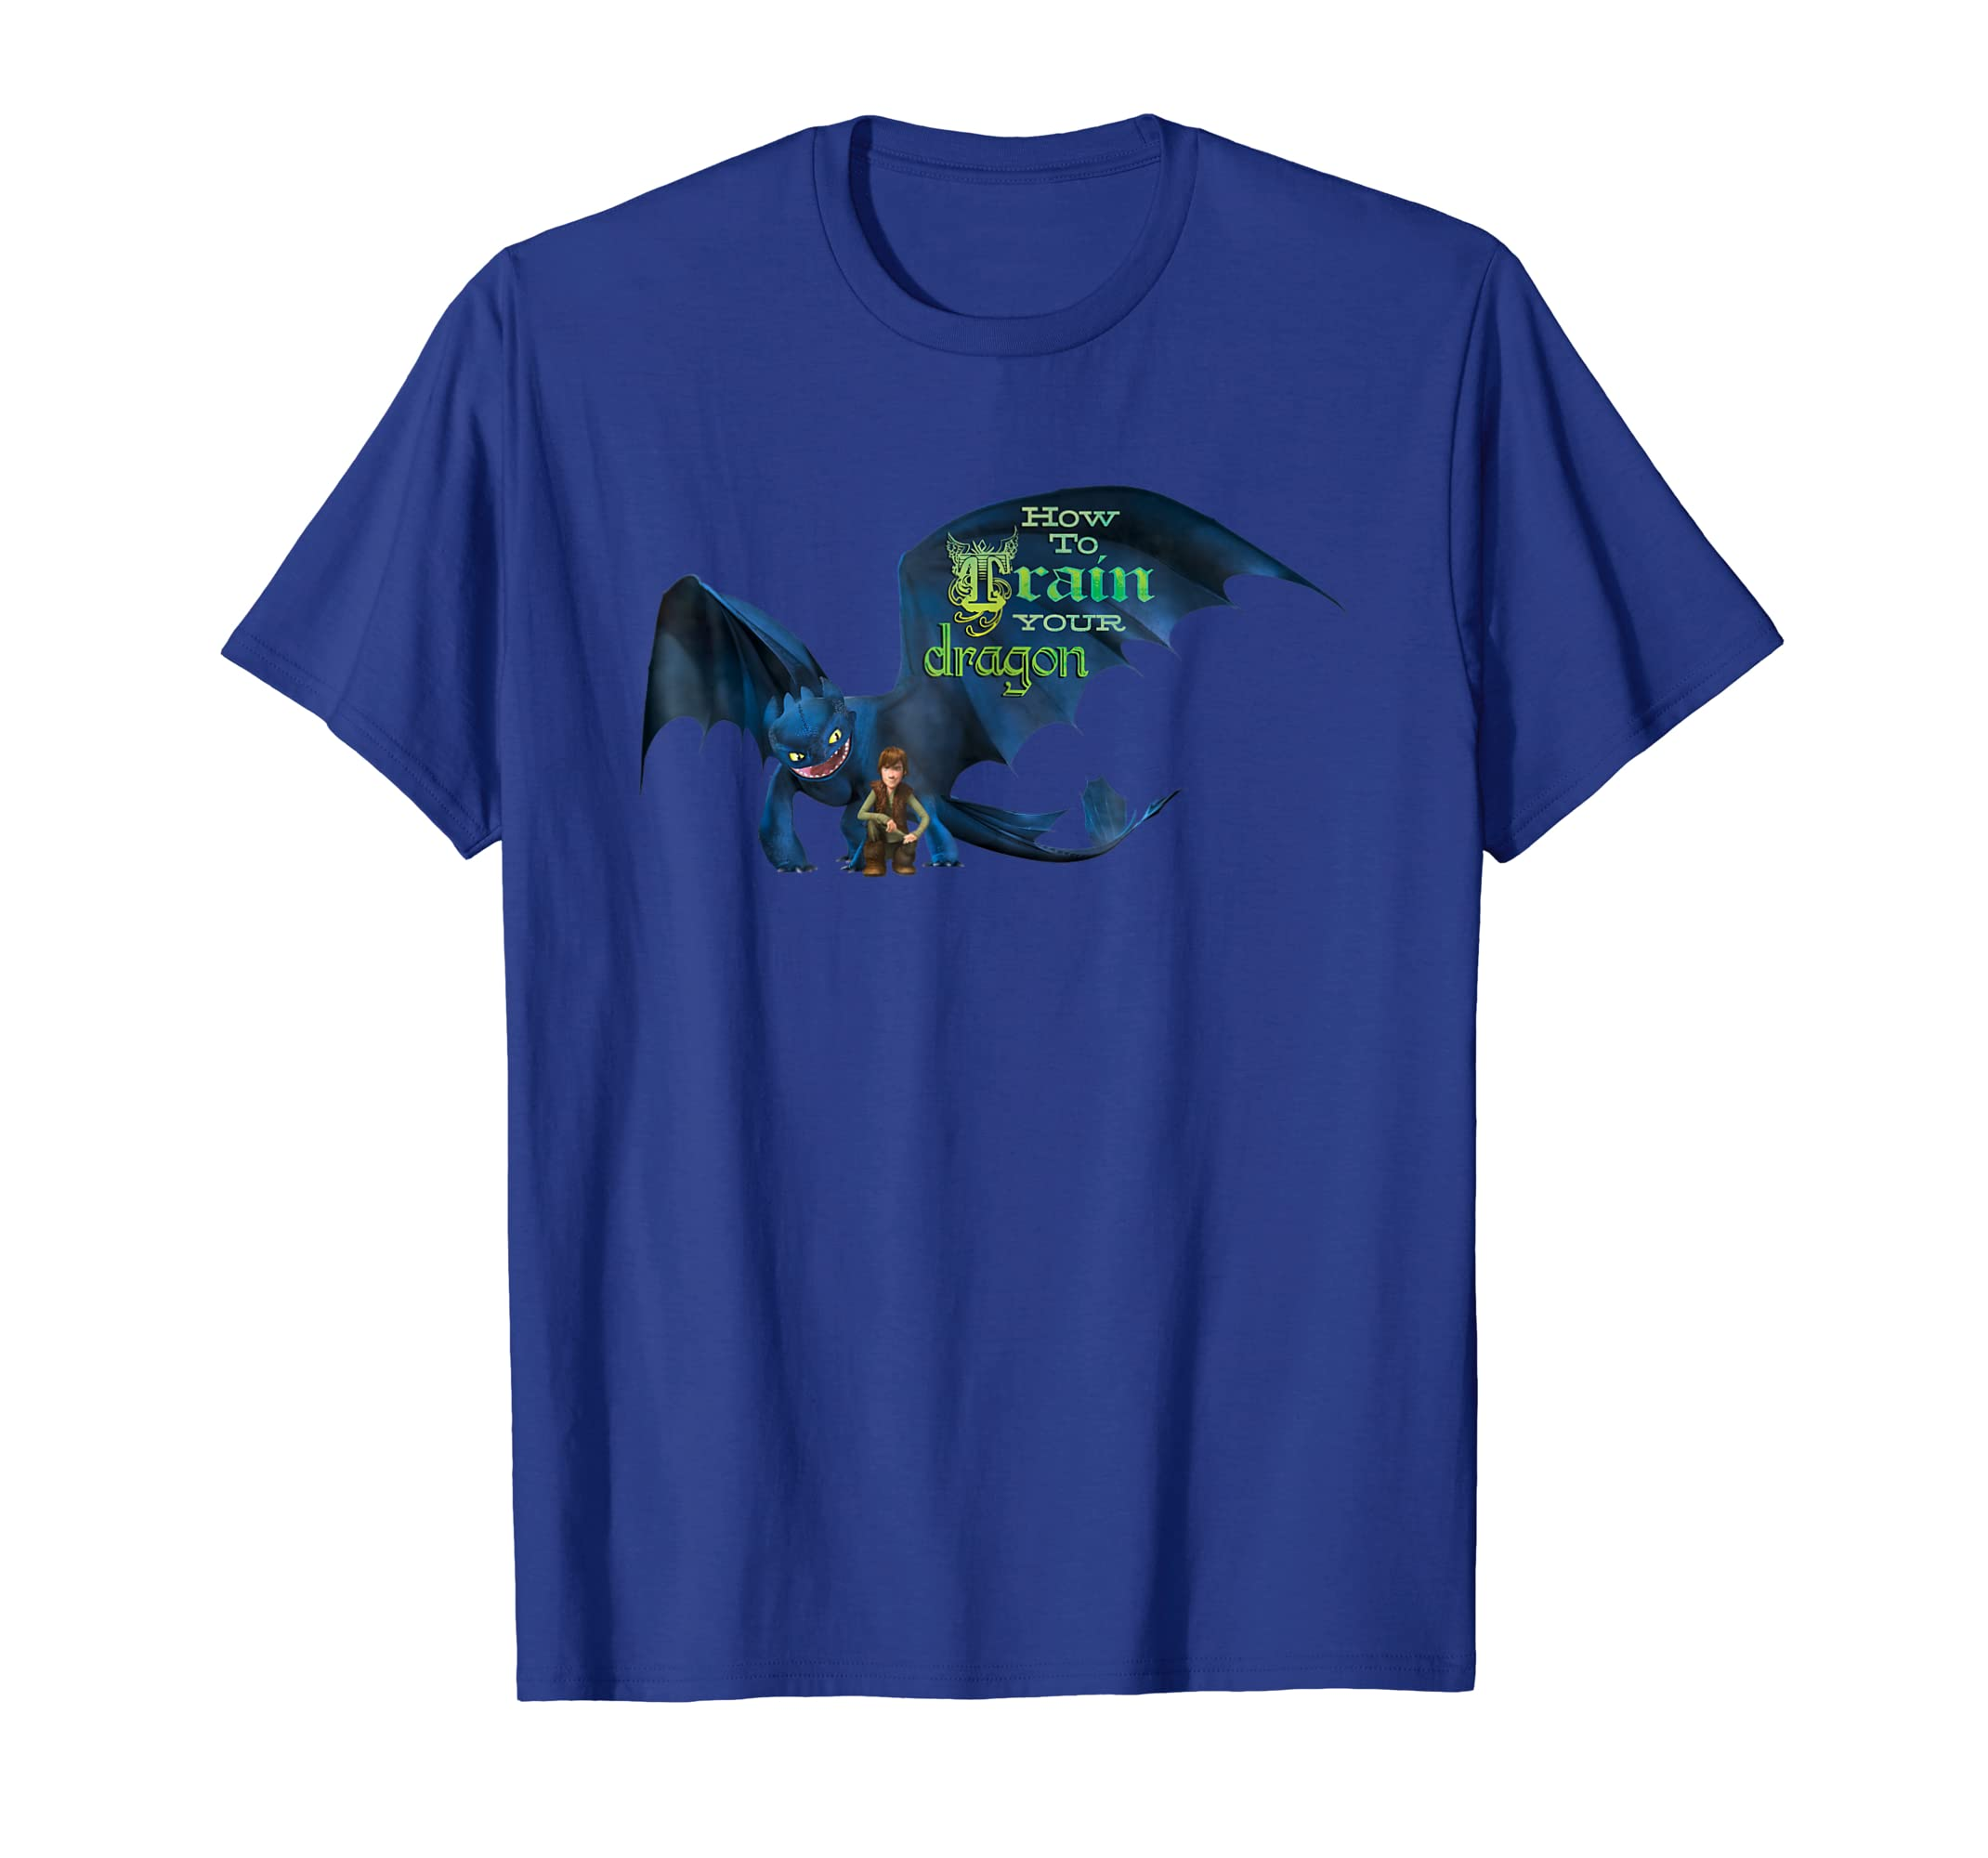 b3e86da6d Amazon.com: DreamWorks' Dragons: Toothless and Hiccup Title T-Shirt:  Clothing